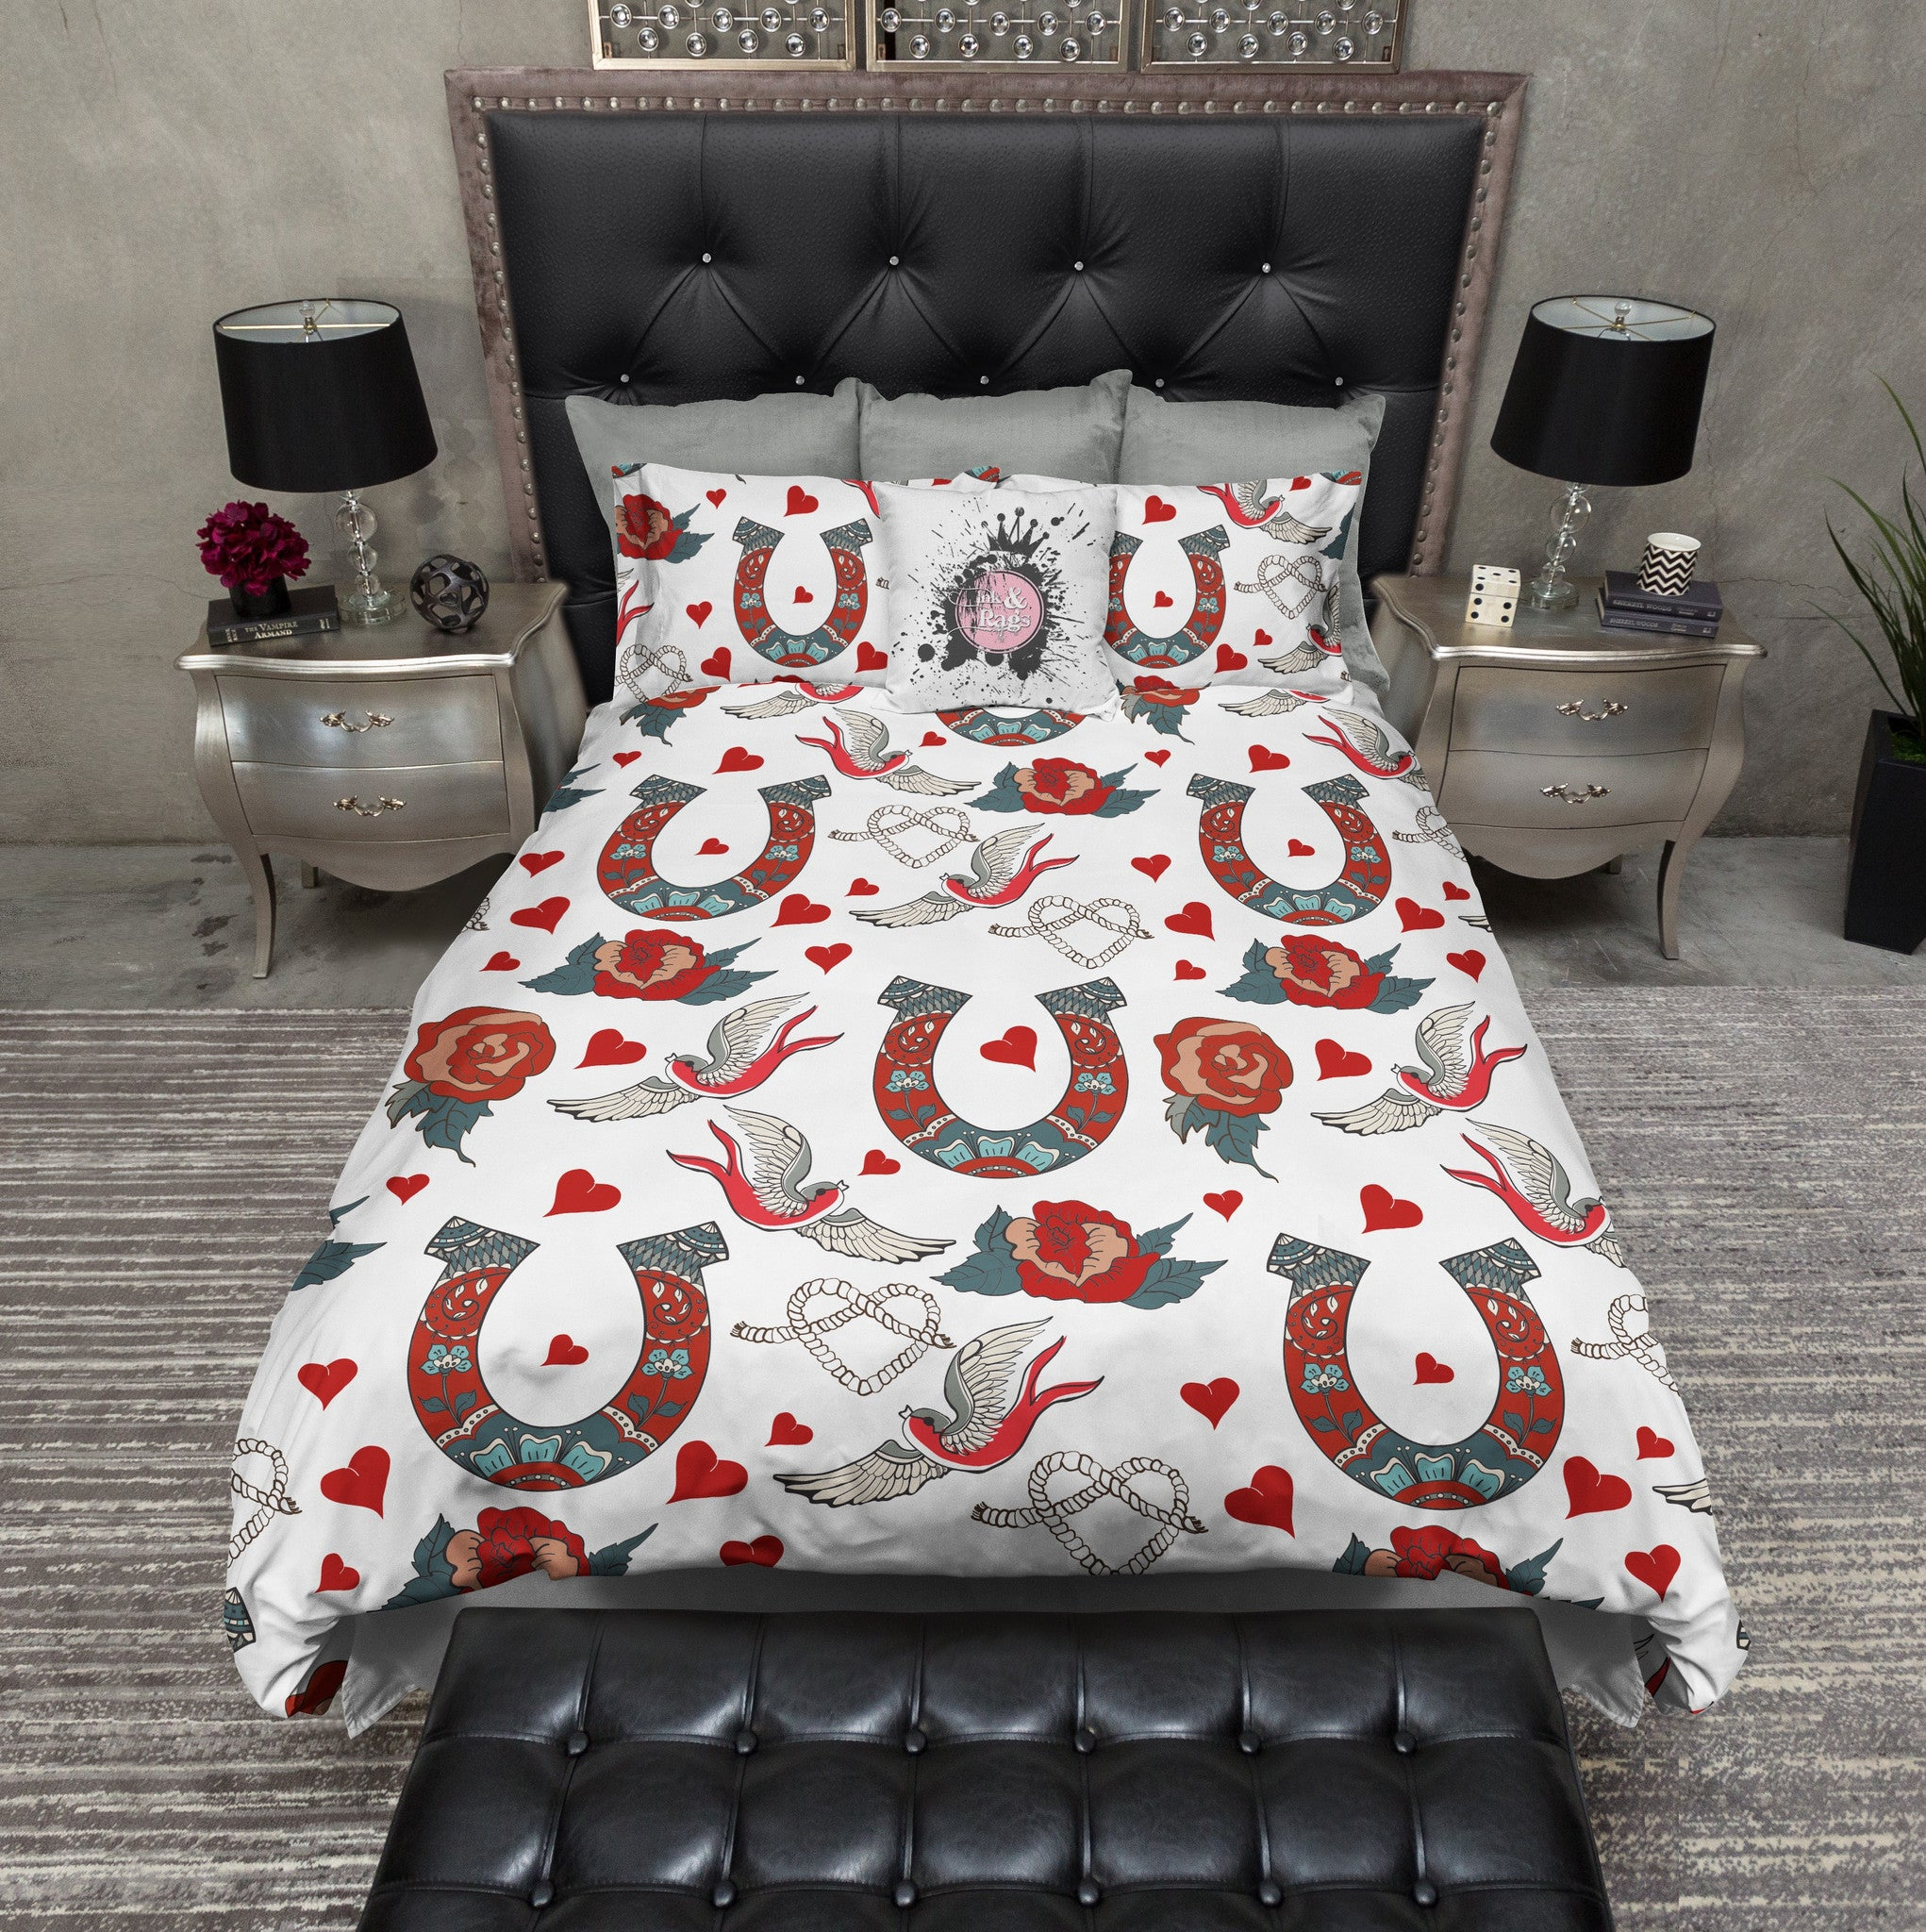 bedding quilt romantic unicorn dove white king full duvet shams comforters dovet horse queen sets design covers twin animal size cover comforter pillow product bedspreads